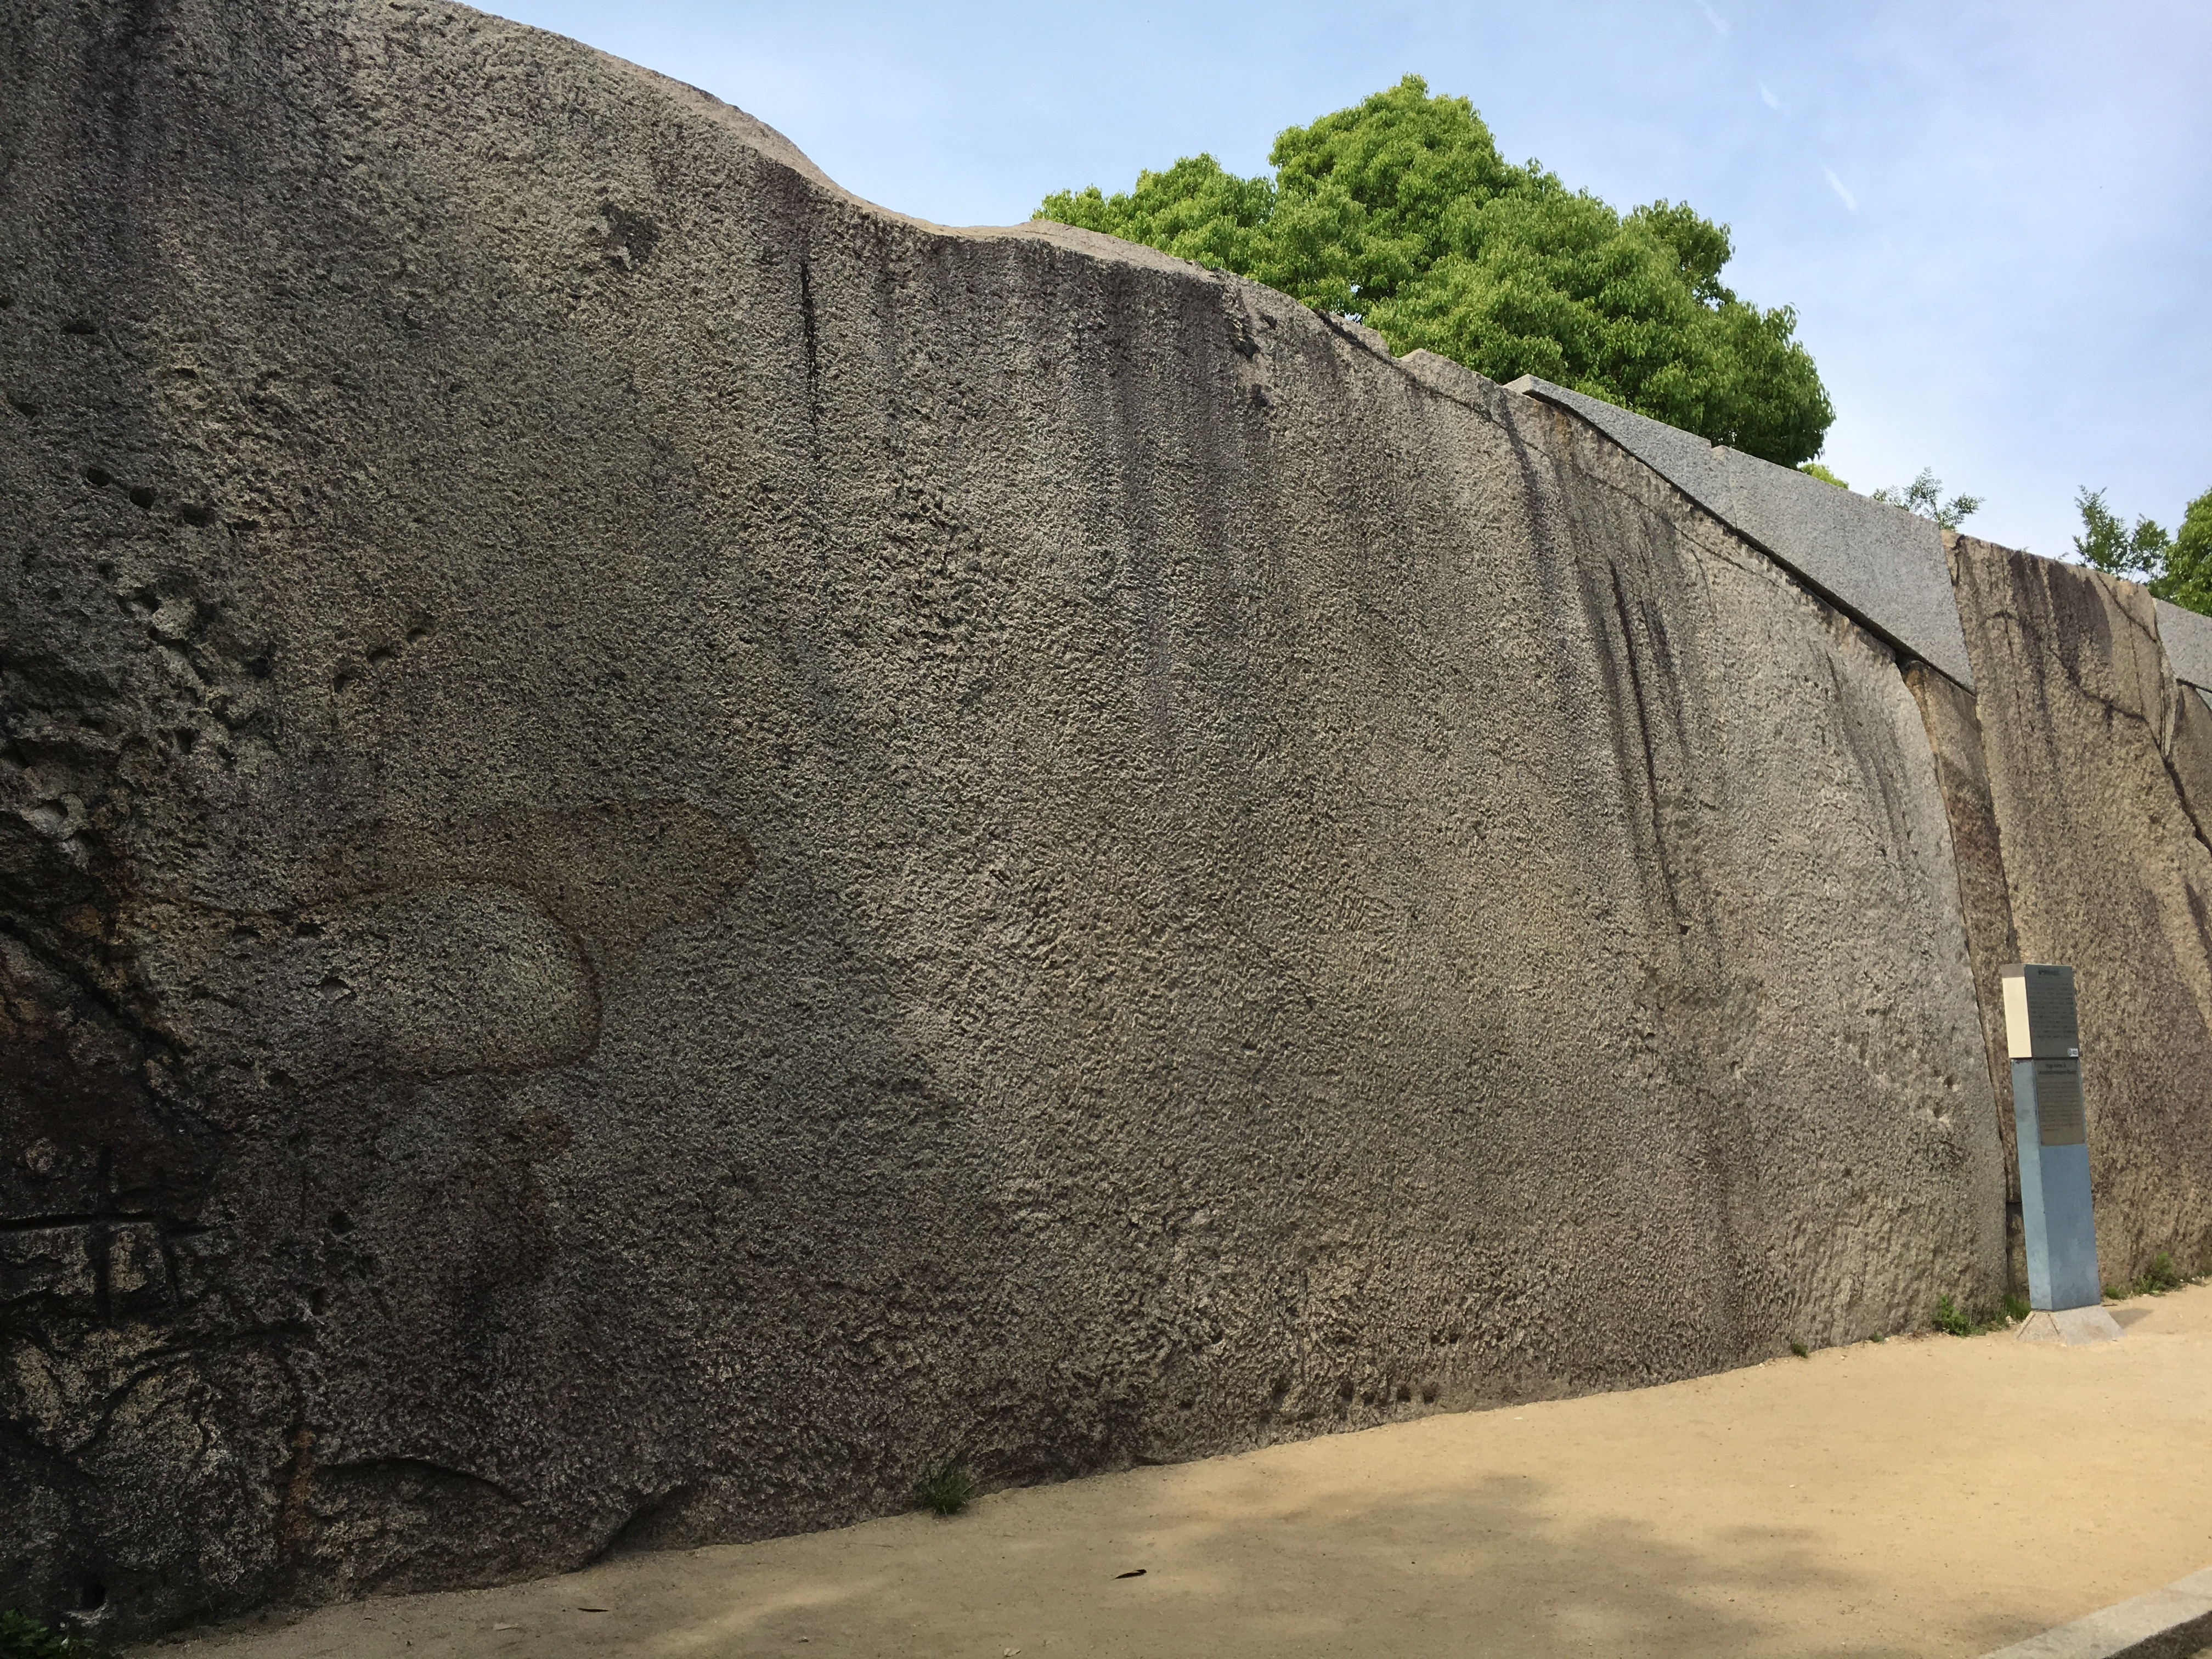 large stone at Osaka castle that has the outline of an octopus